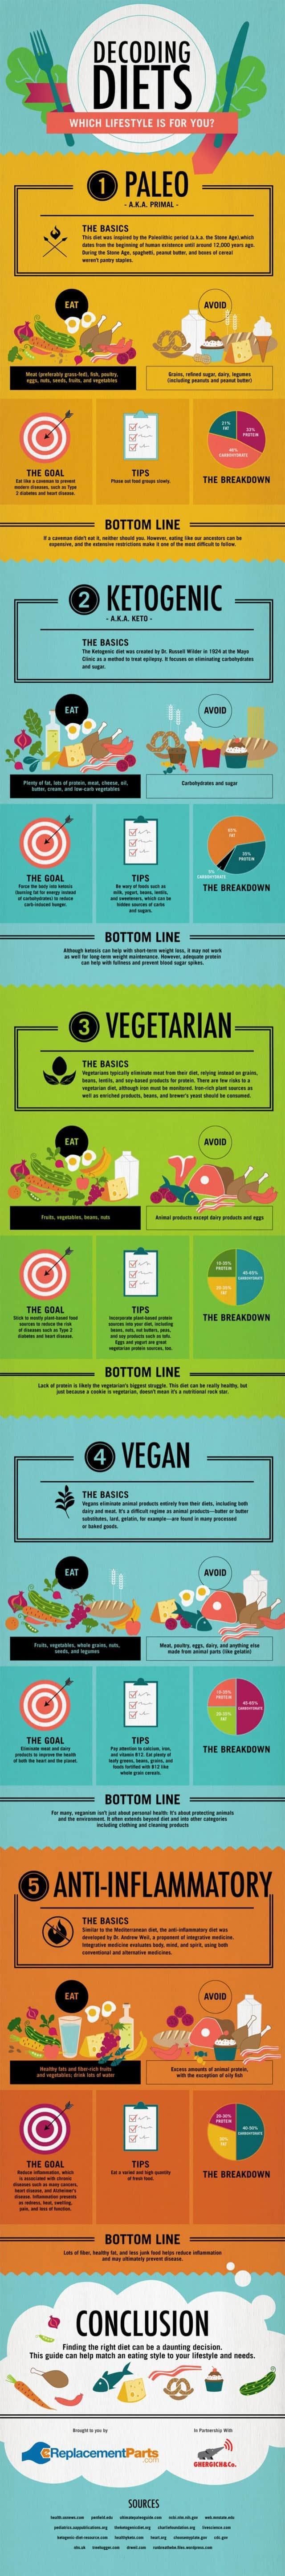 Decoding Diets Which Lifestyle is Right for You